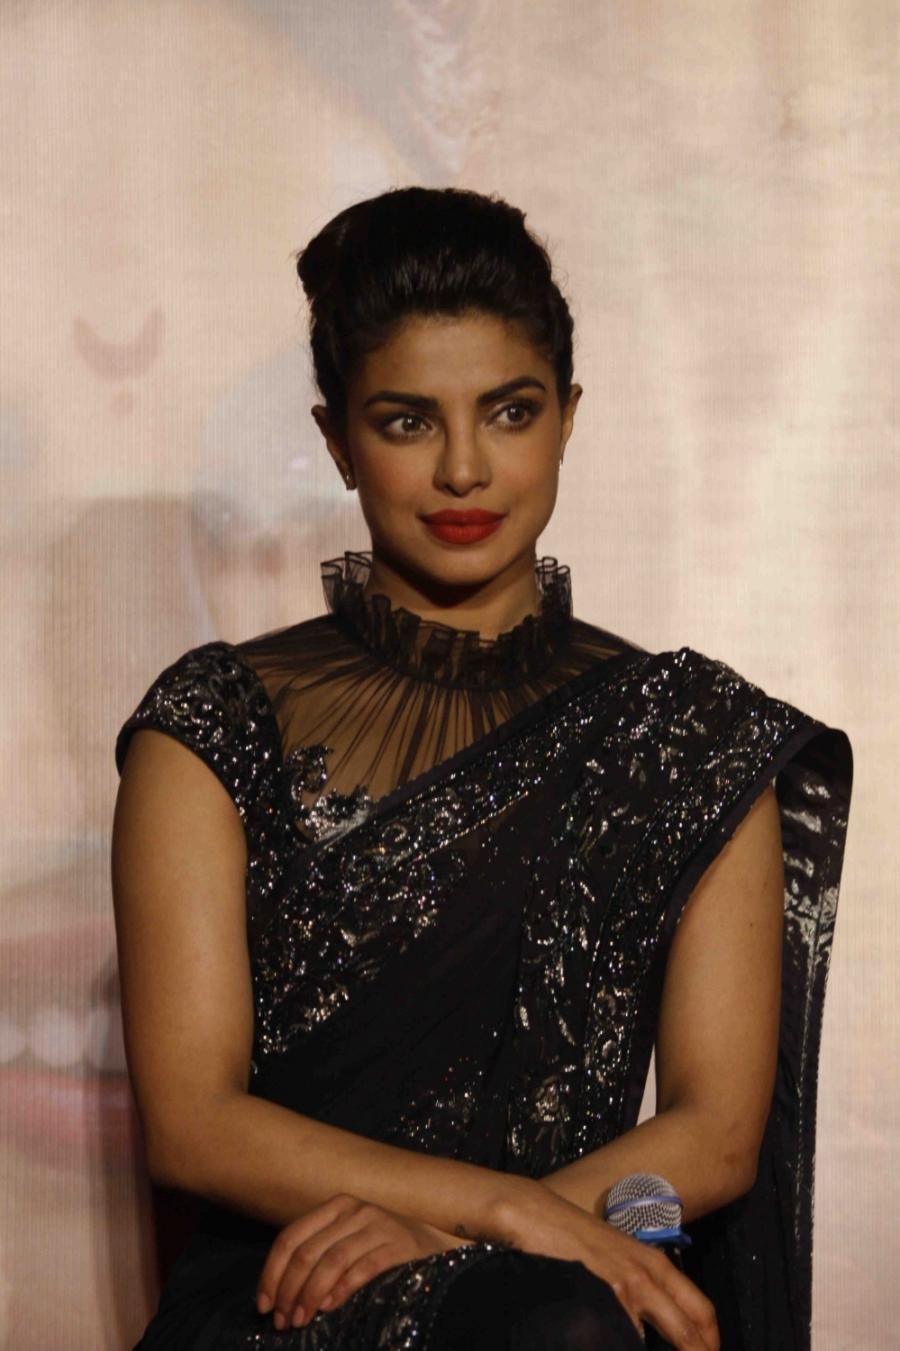 Priyanka Priyanka Chopra Hot Stills At Party In Black Saree